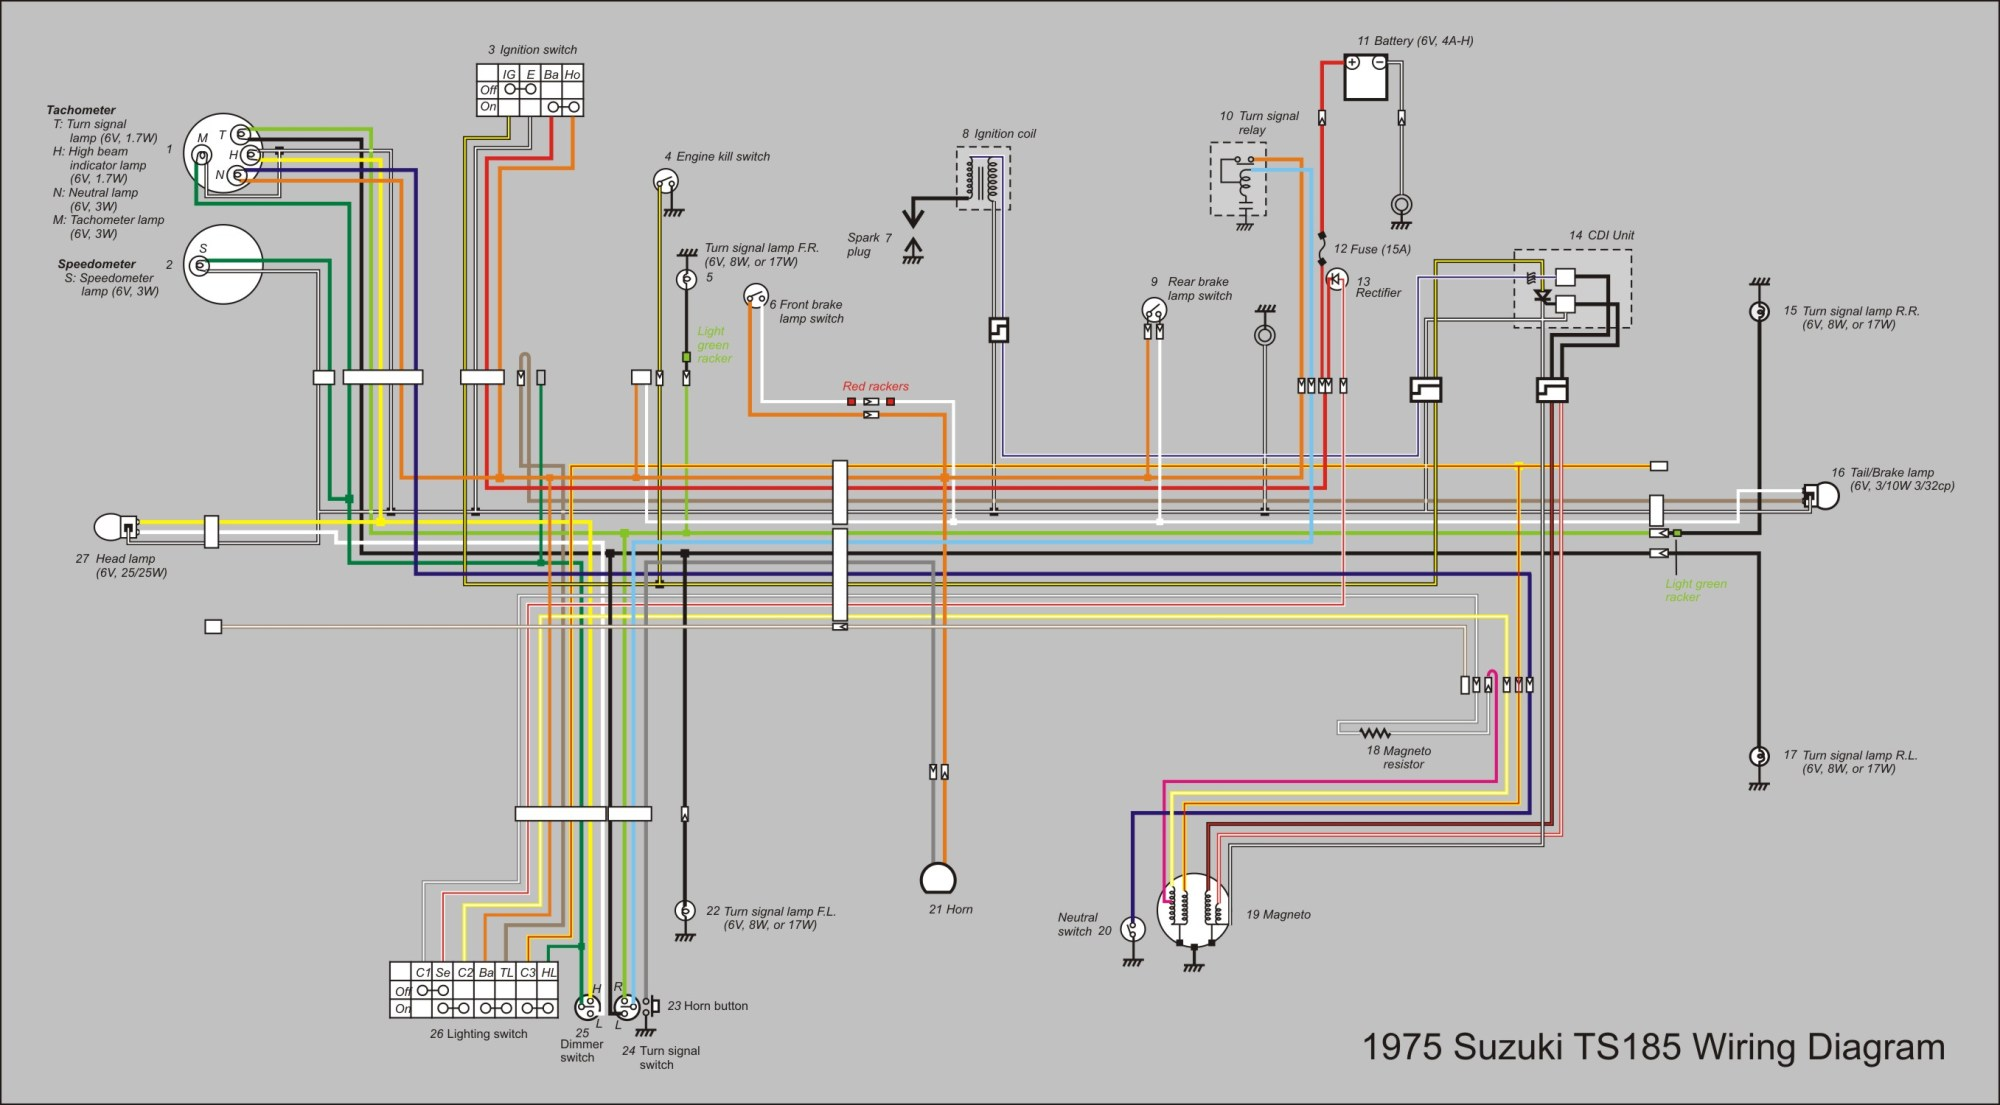 hight resolution of file ts185 wiring diagram new jpg wikimedia commons rh commons wikimedia org suzuki jimny engine wiring